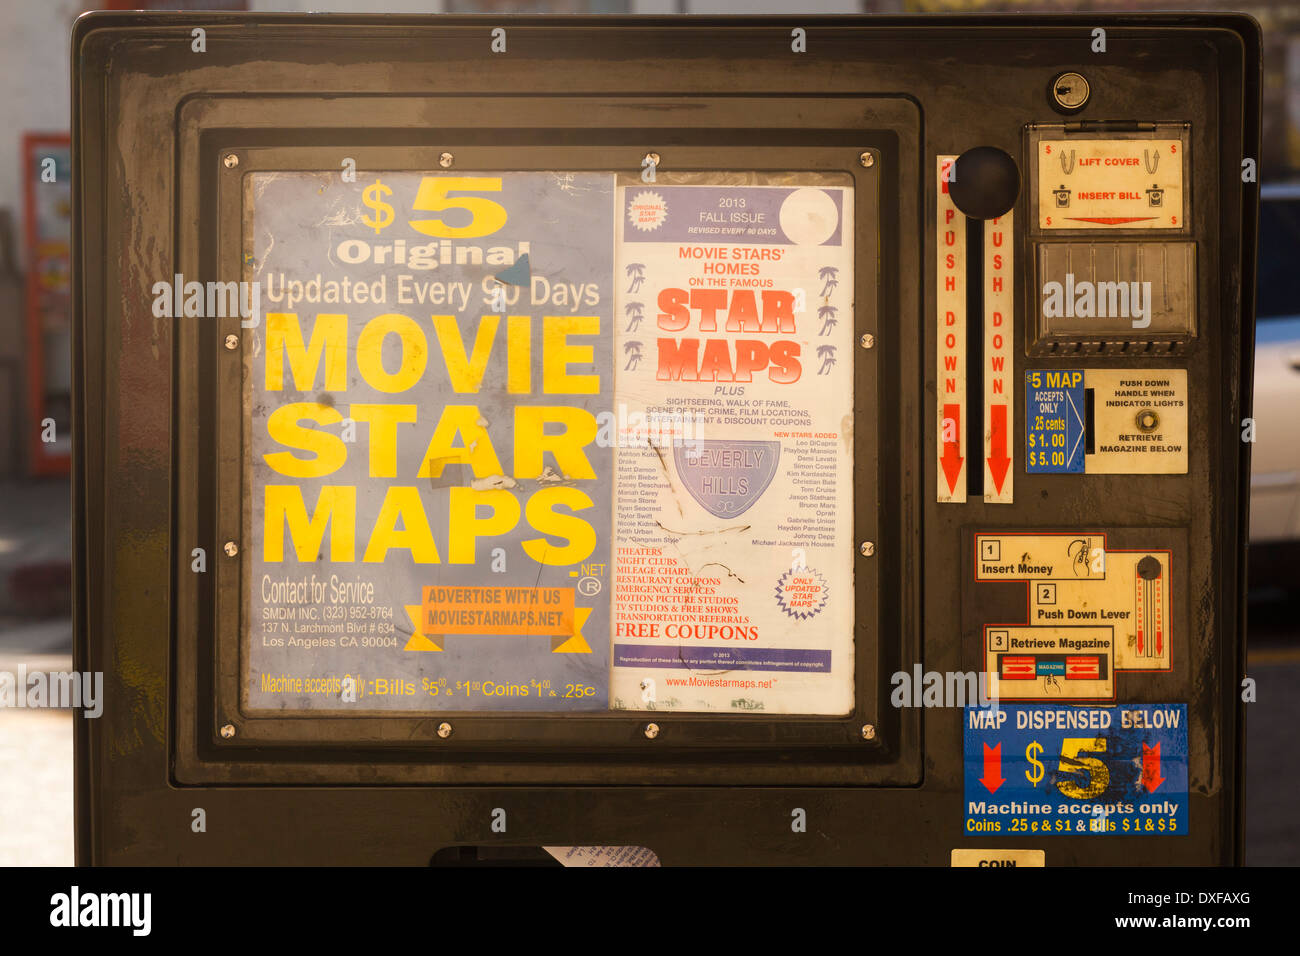 Movie star maps in a dispenser on Hollywood Boulevard, Los Angeles ...